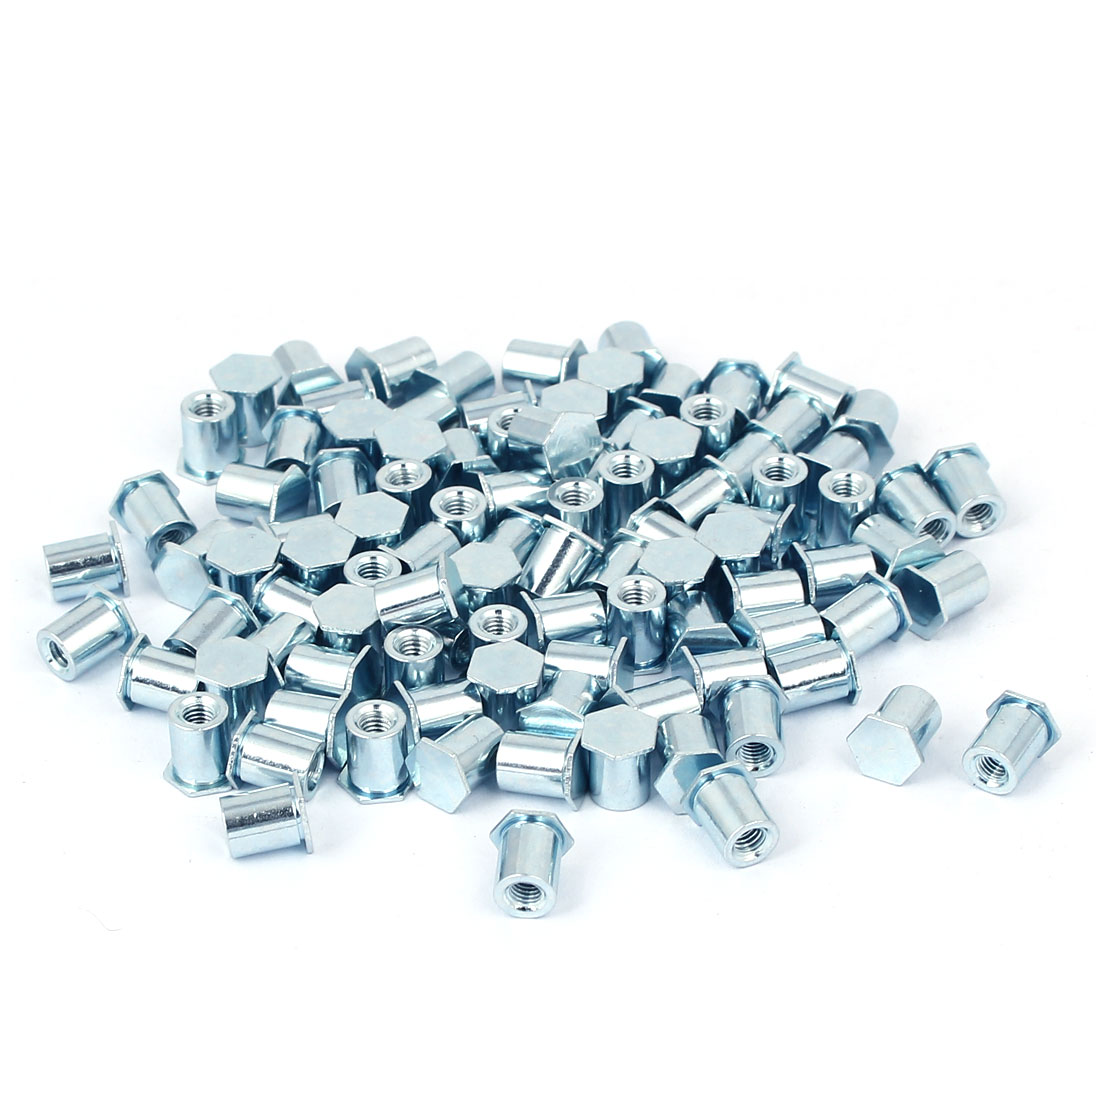 M3 x 7mm Thread Galvanized Carbon Steel Blind Self Clinching Standoffs 100 Pcs